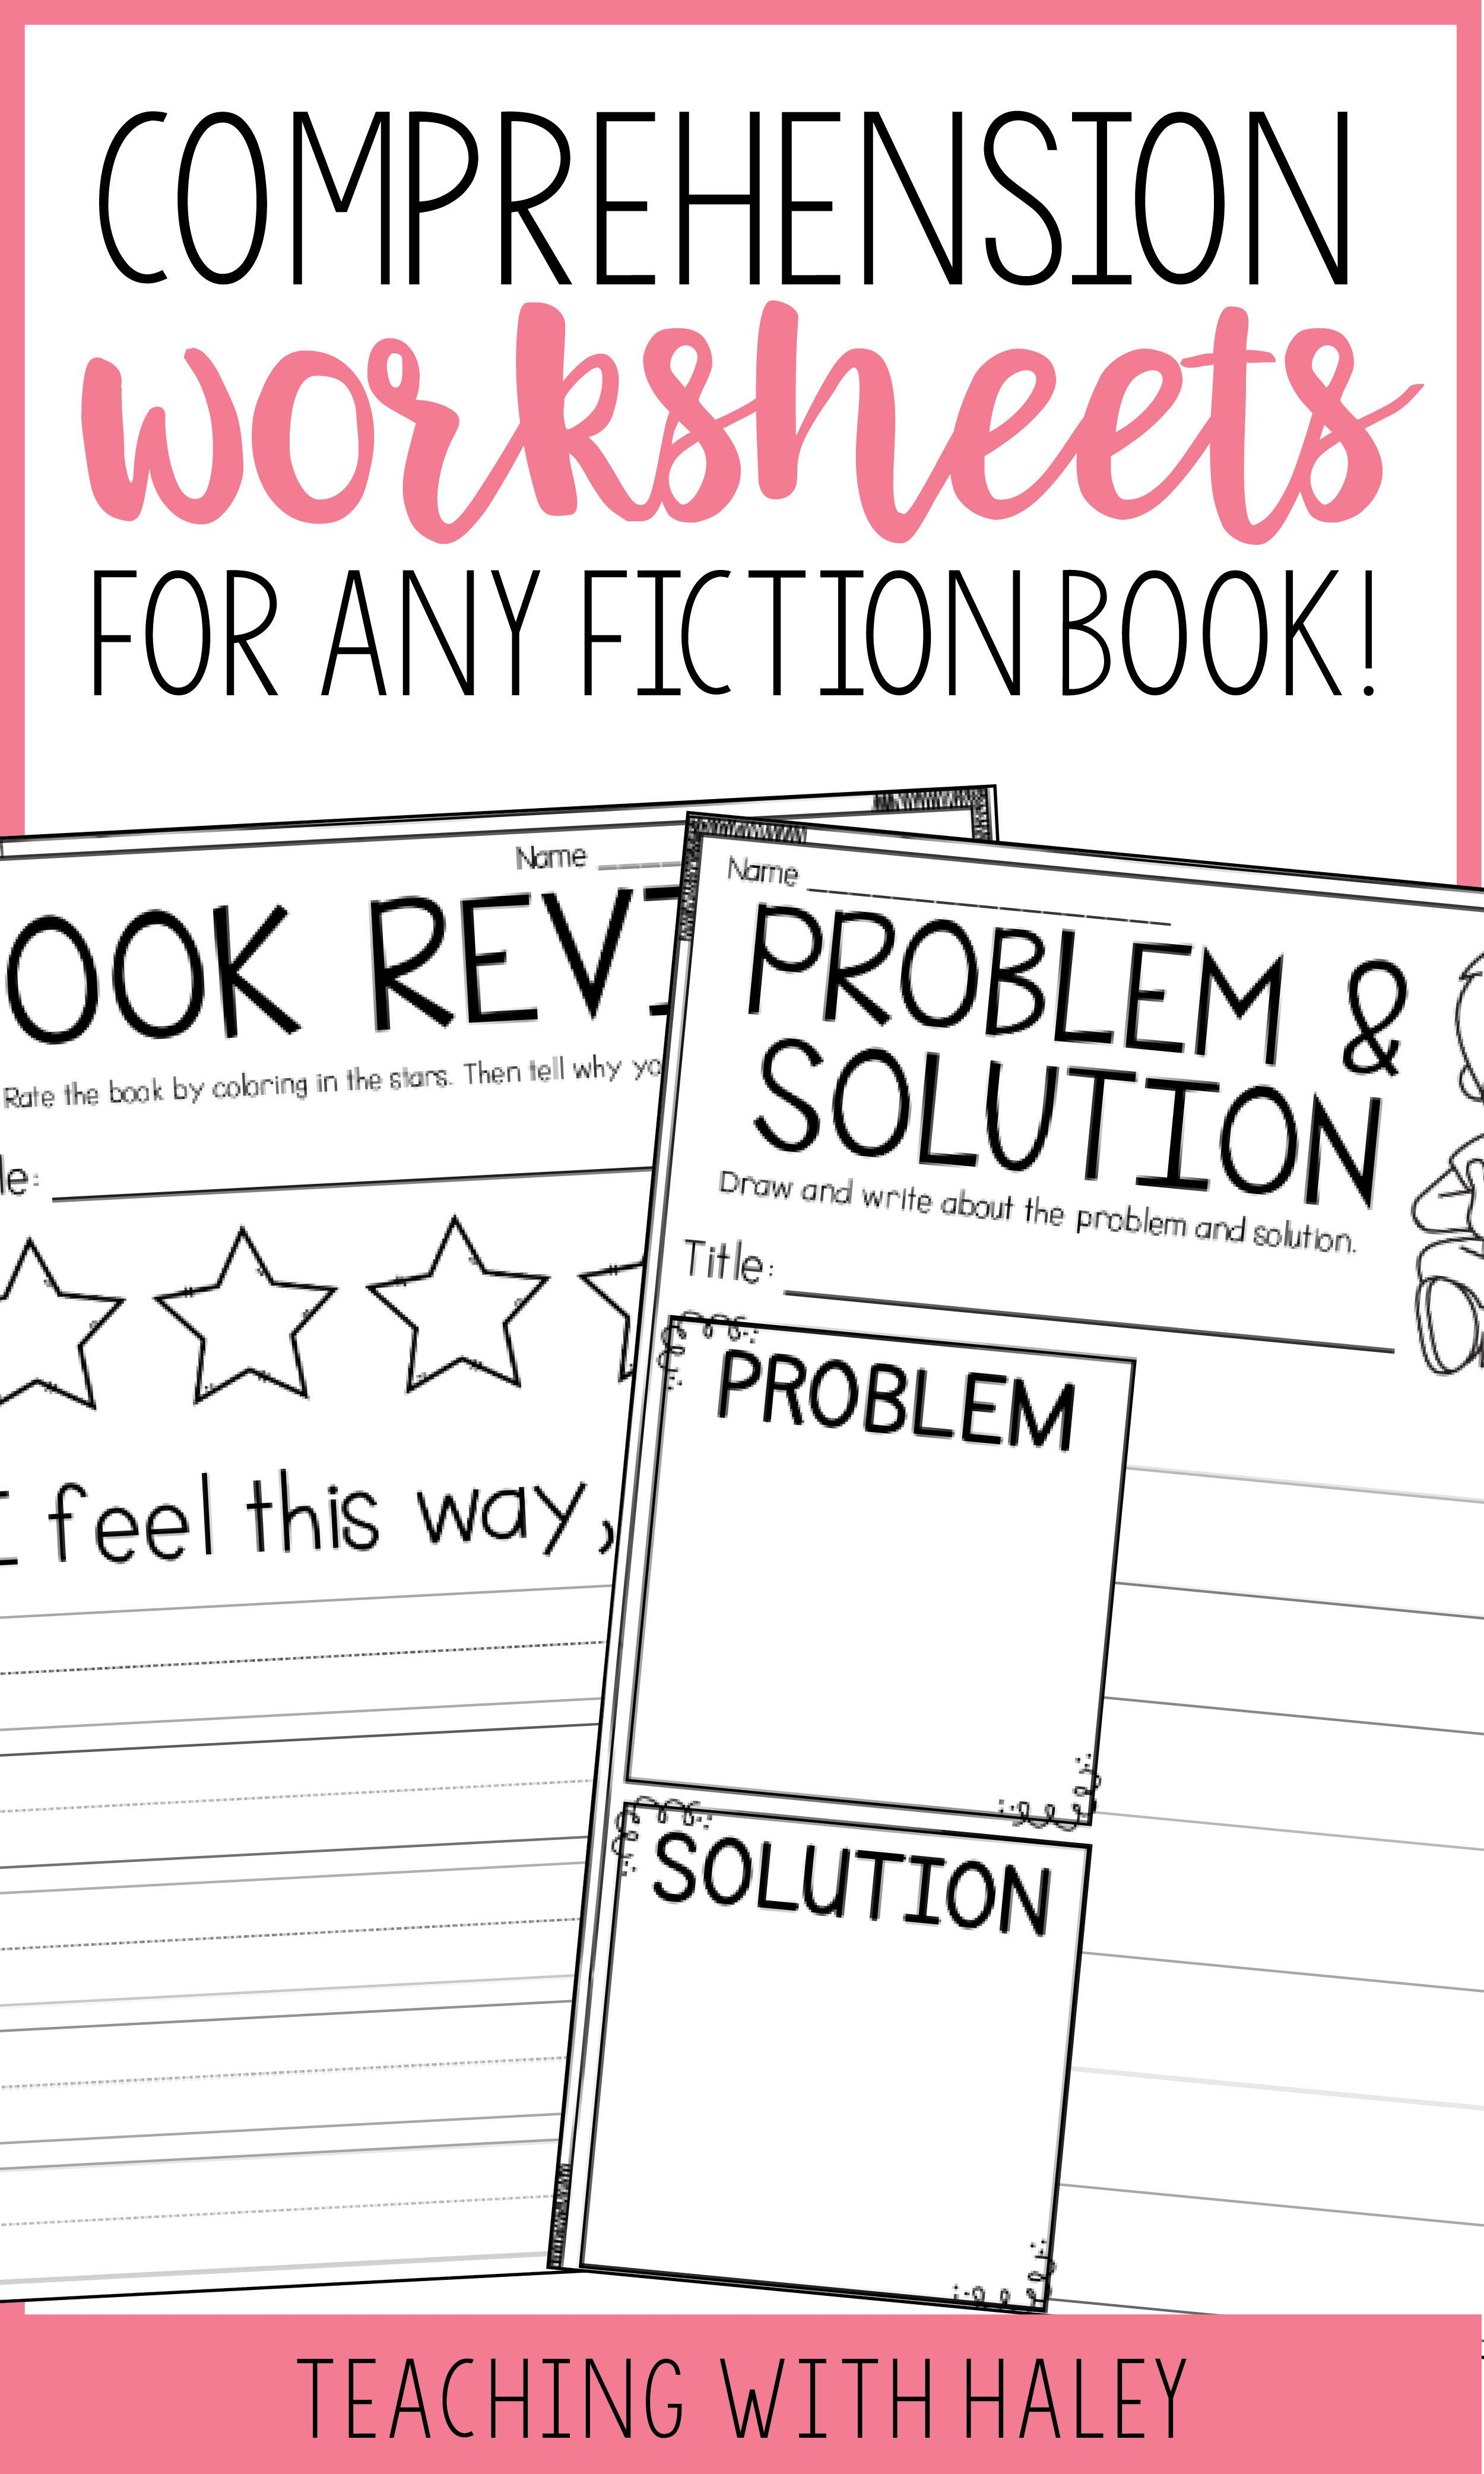 Comprehension Pages For Any Fiction Book Reading Comprehension Activities Fun Writing Activities 2nd Grade Reading Comprehension [ 4167 x 2500 Pixel ]